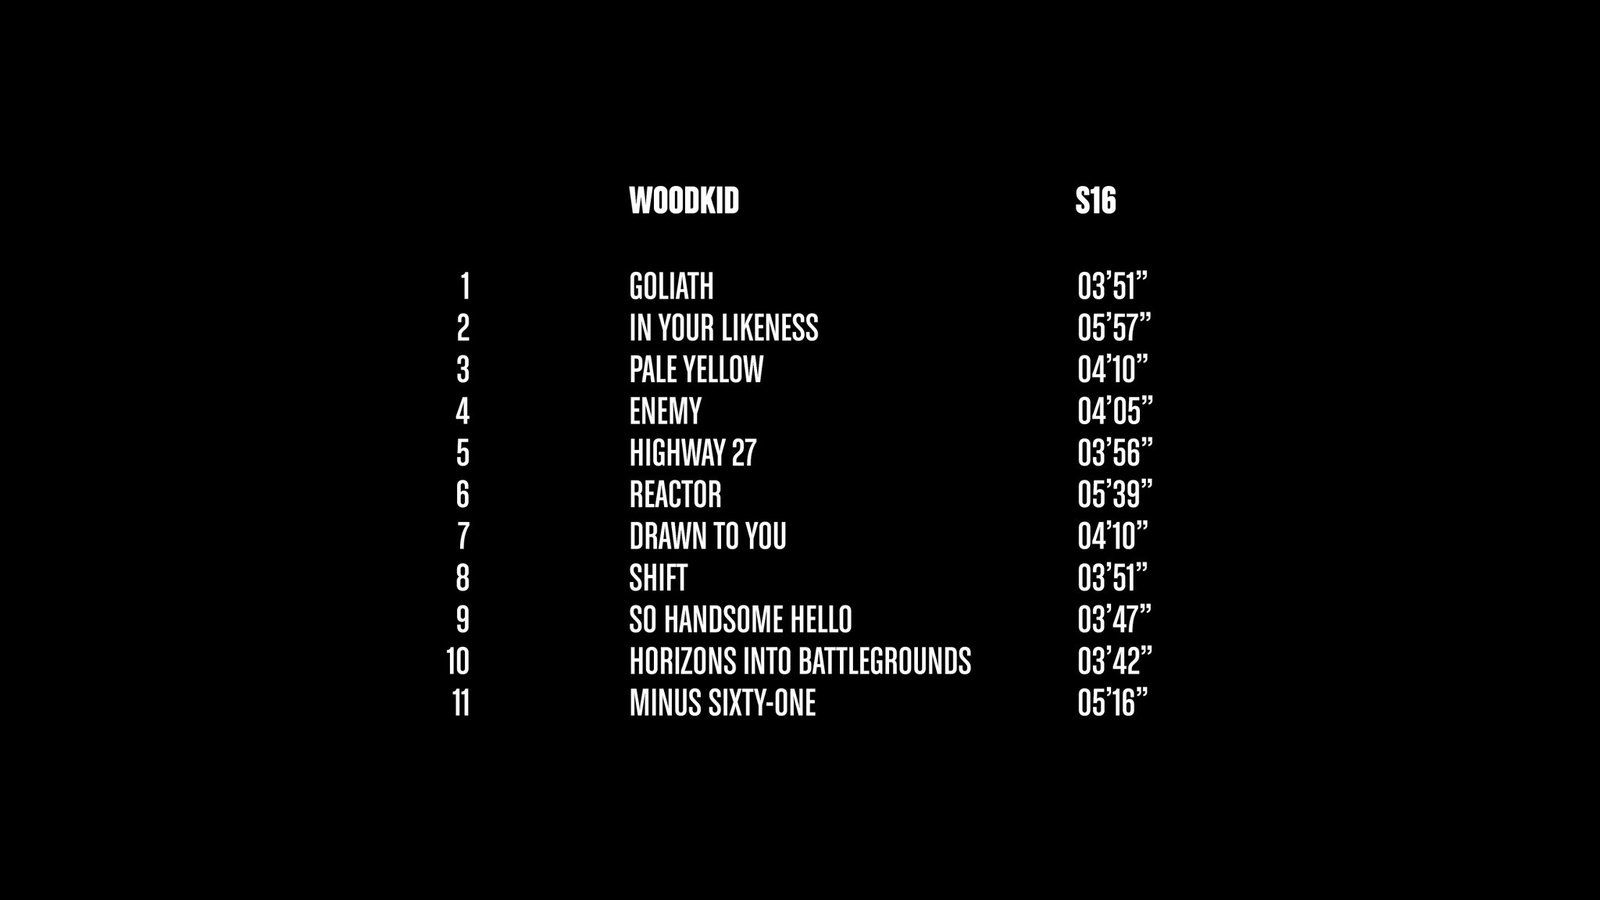 WOODKID IS BACK WITH 'S16' ALBUM